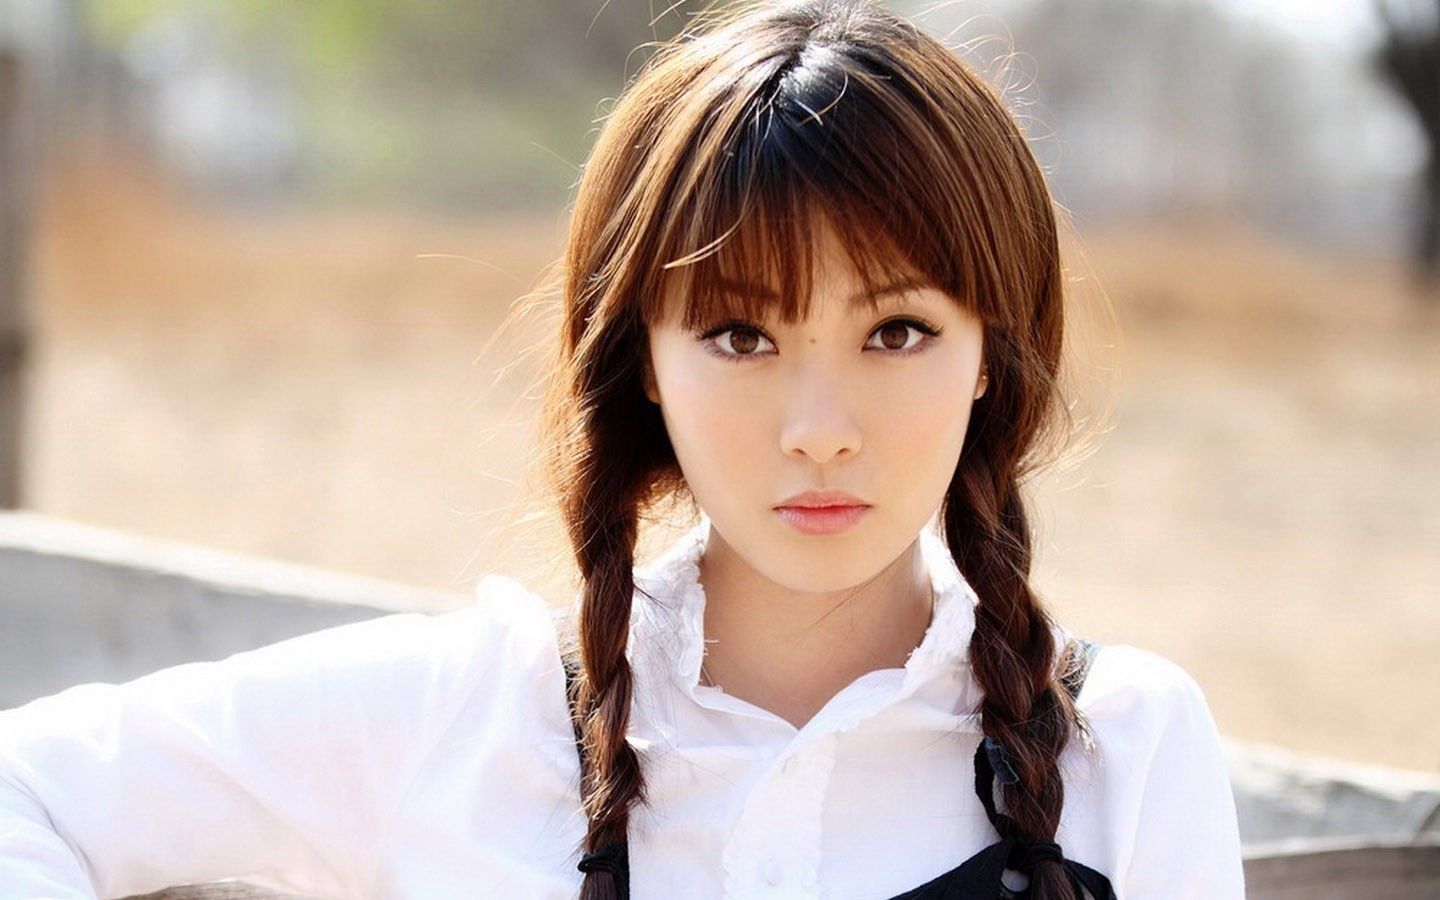 woman asians braids Zhu HD Wallpaper